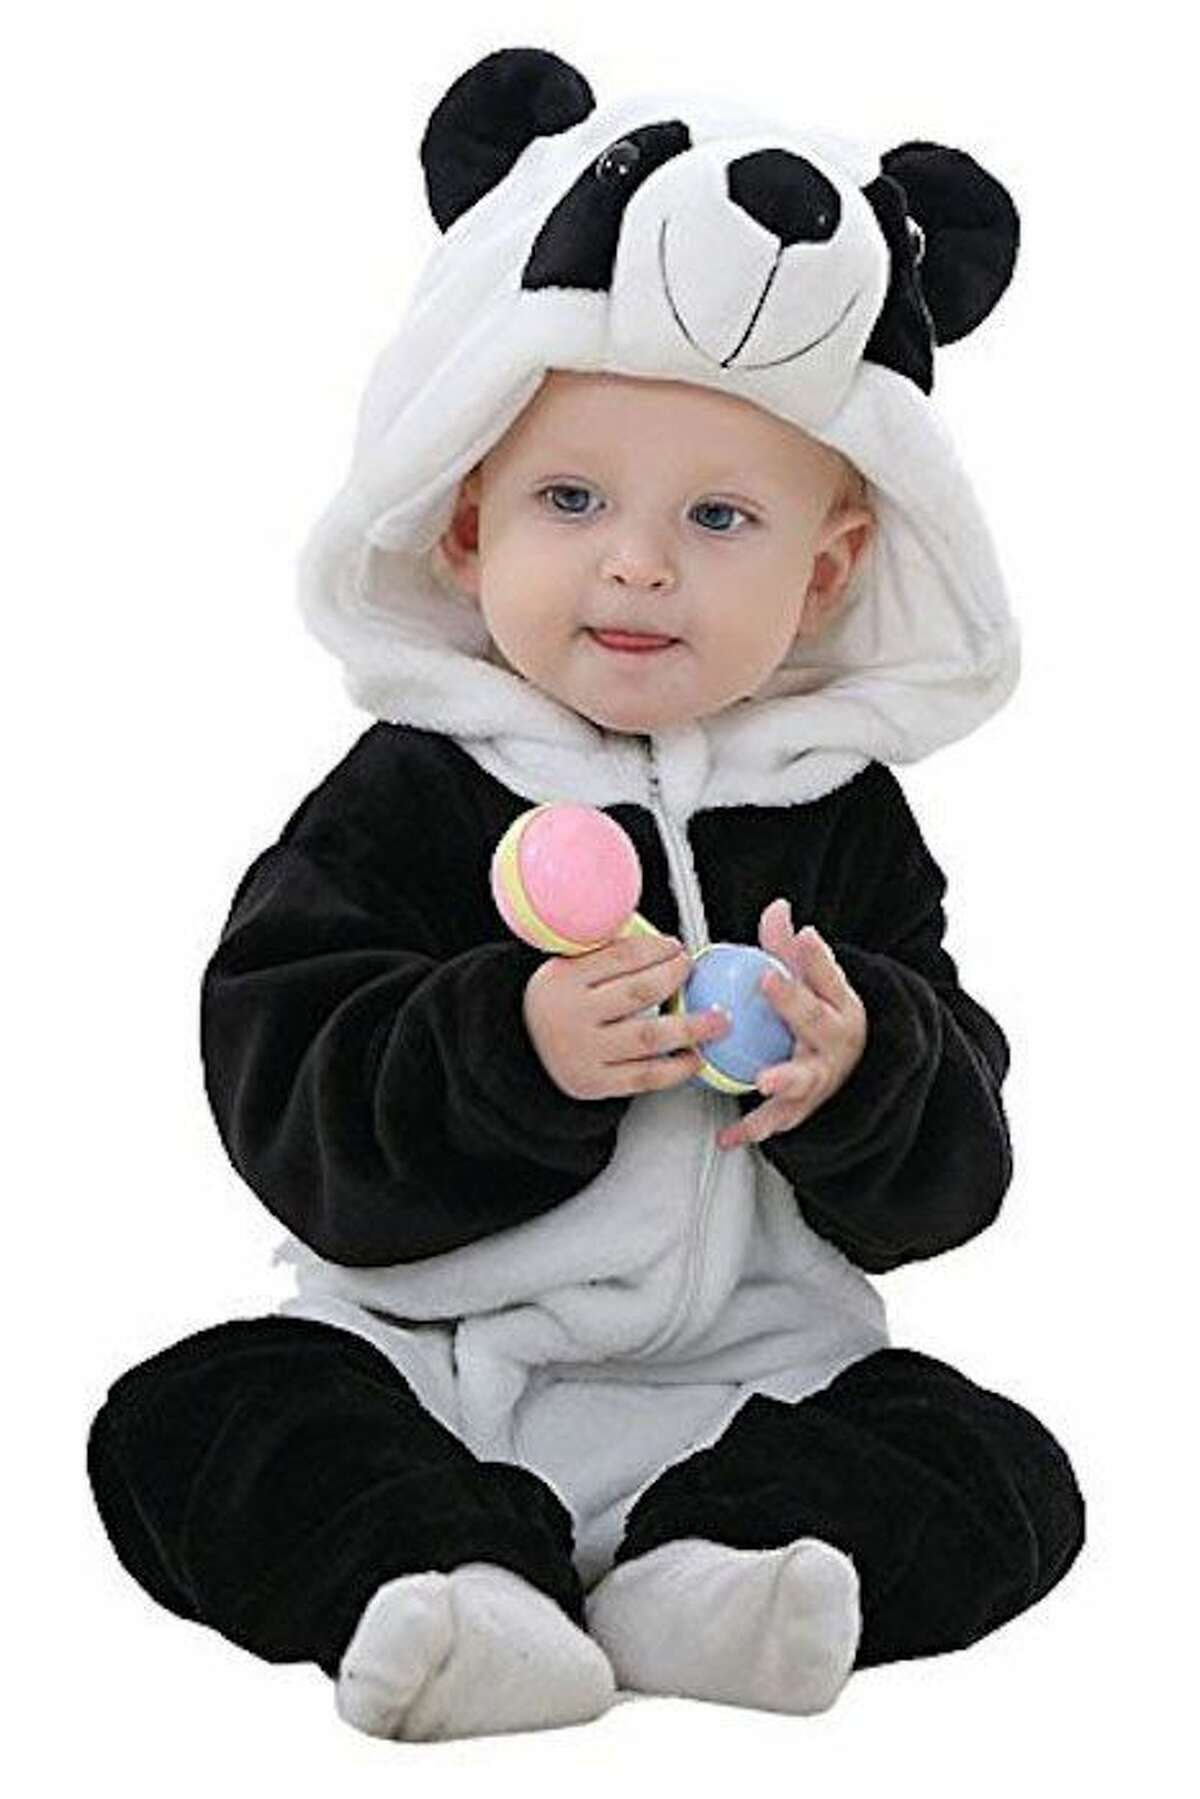 Baby Panda Costume: $16.69 Shop Now Because everyone looks good in black and white.